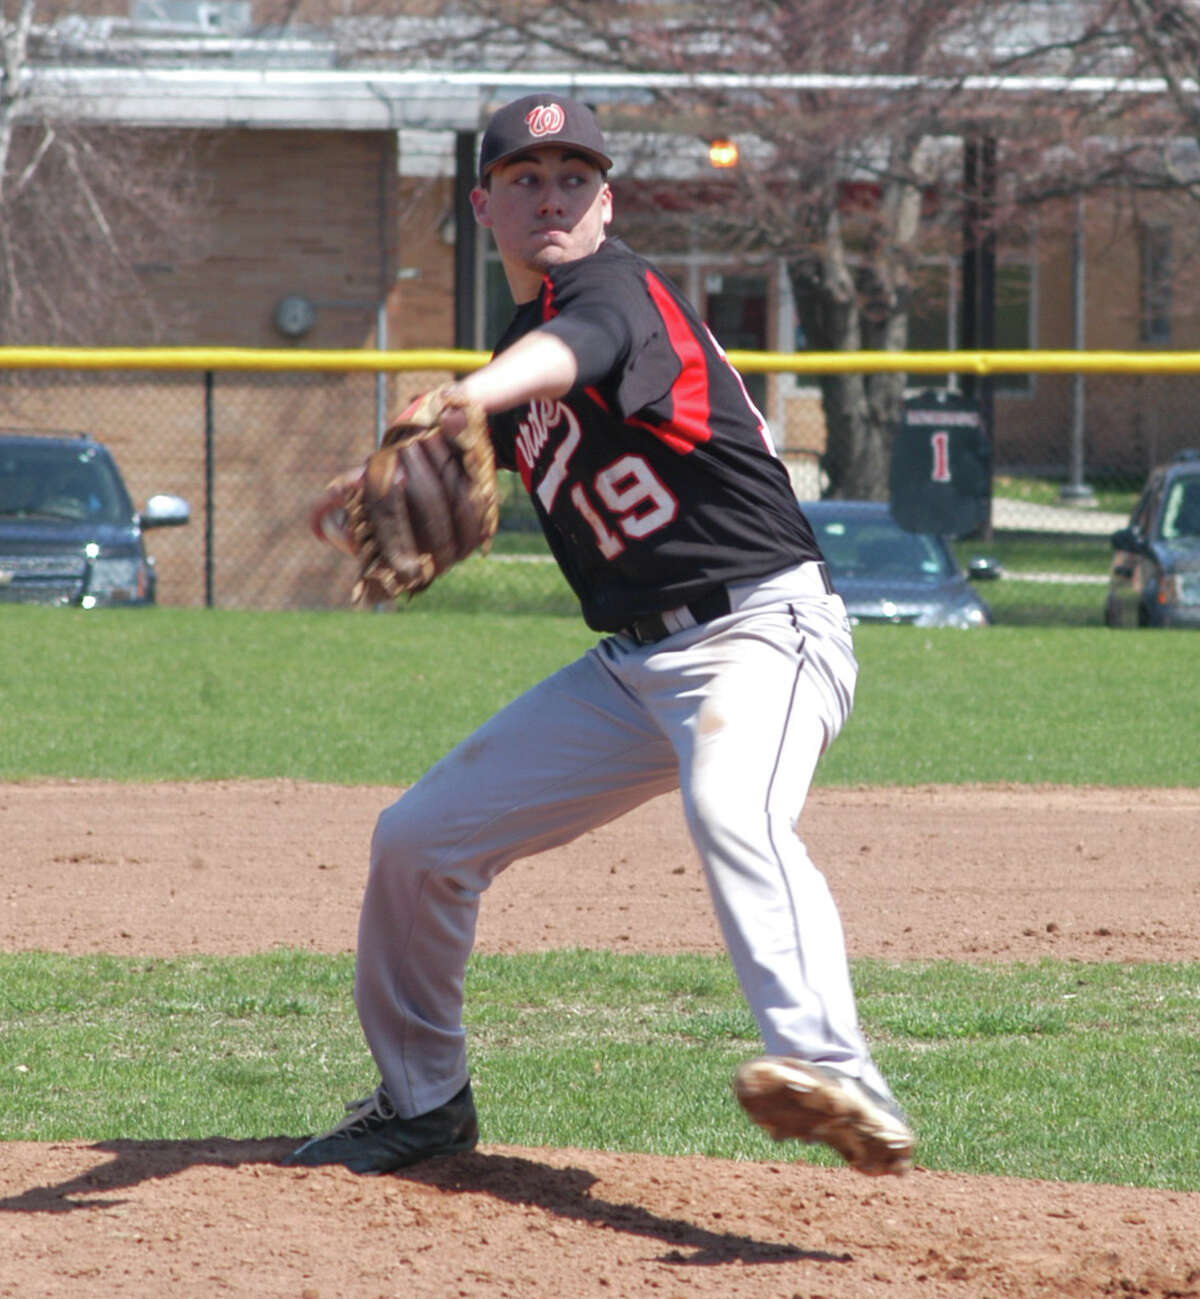 Fairfield Warde pitcher Nick Nardone threw two innings of relief, allowing one run, to help the Mustangs preserve a 7-5 win over Darien on Thursday, April 17 in an FCIAC baseball game in Fairfield.